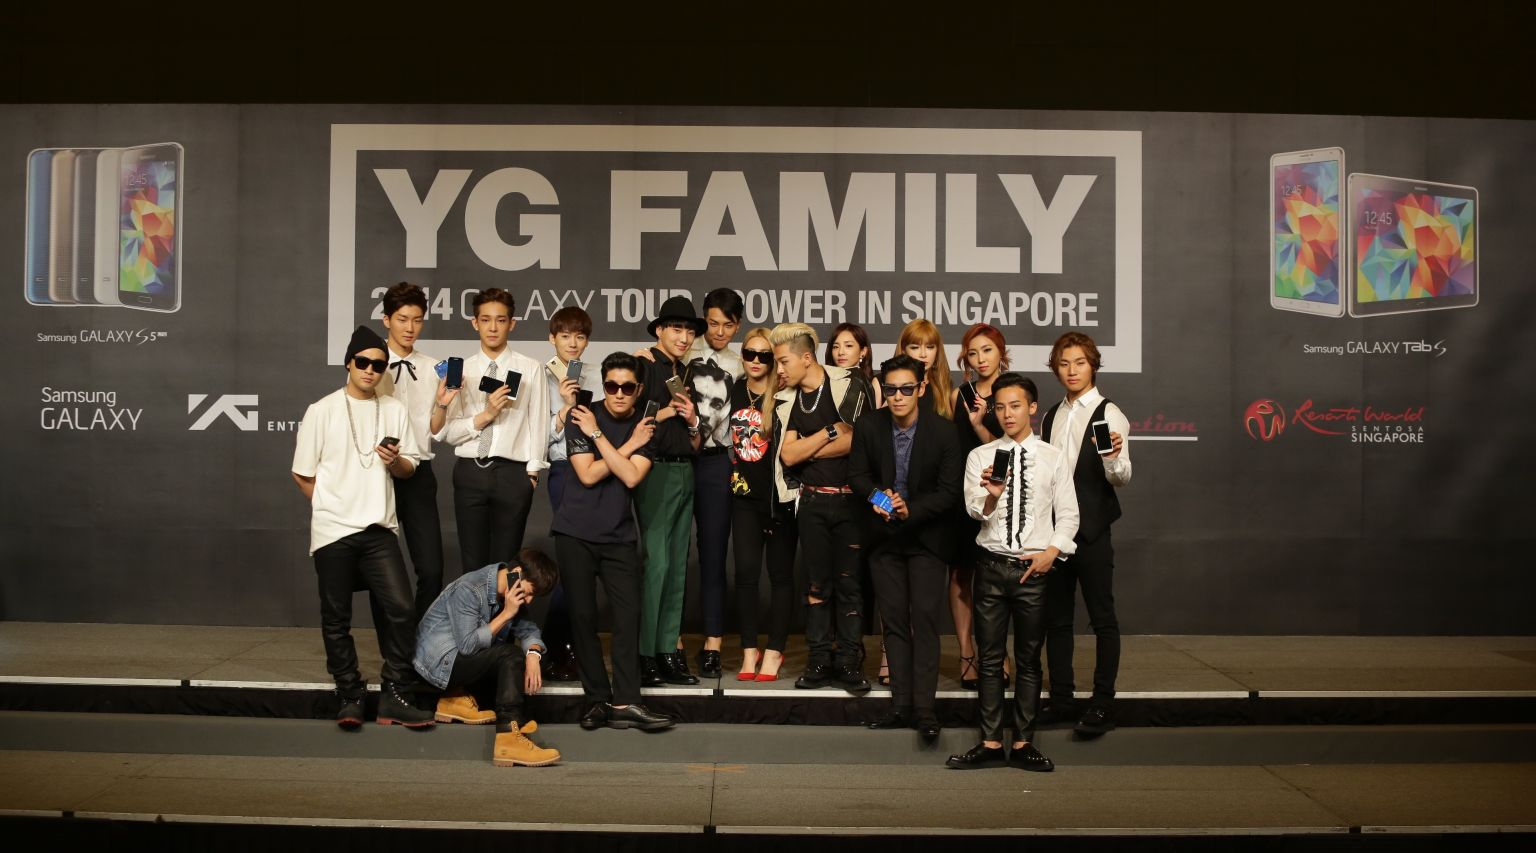 A group photo of the YG Family artistes at the Samsung press conference, posing with the latest Samsung devices